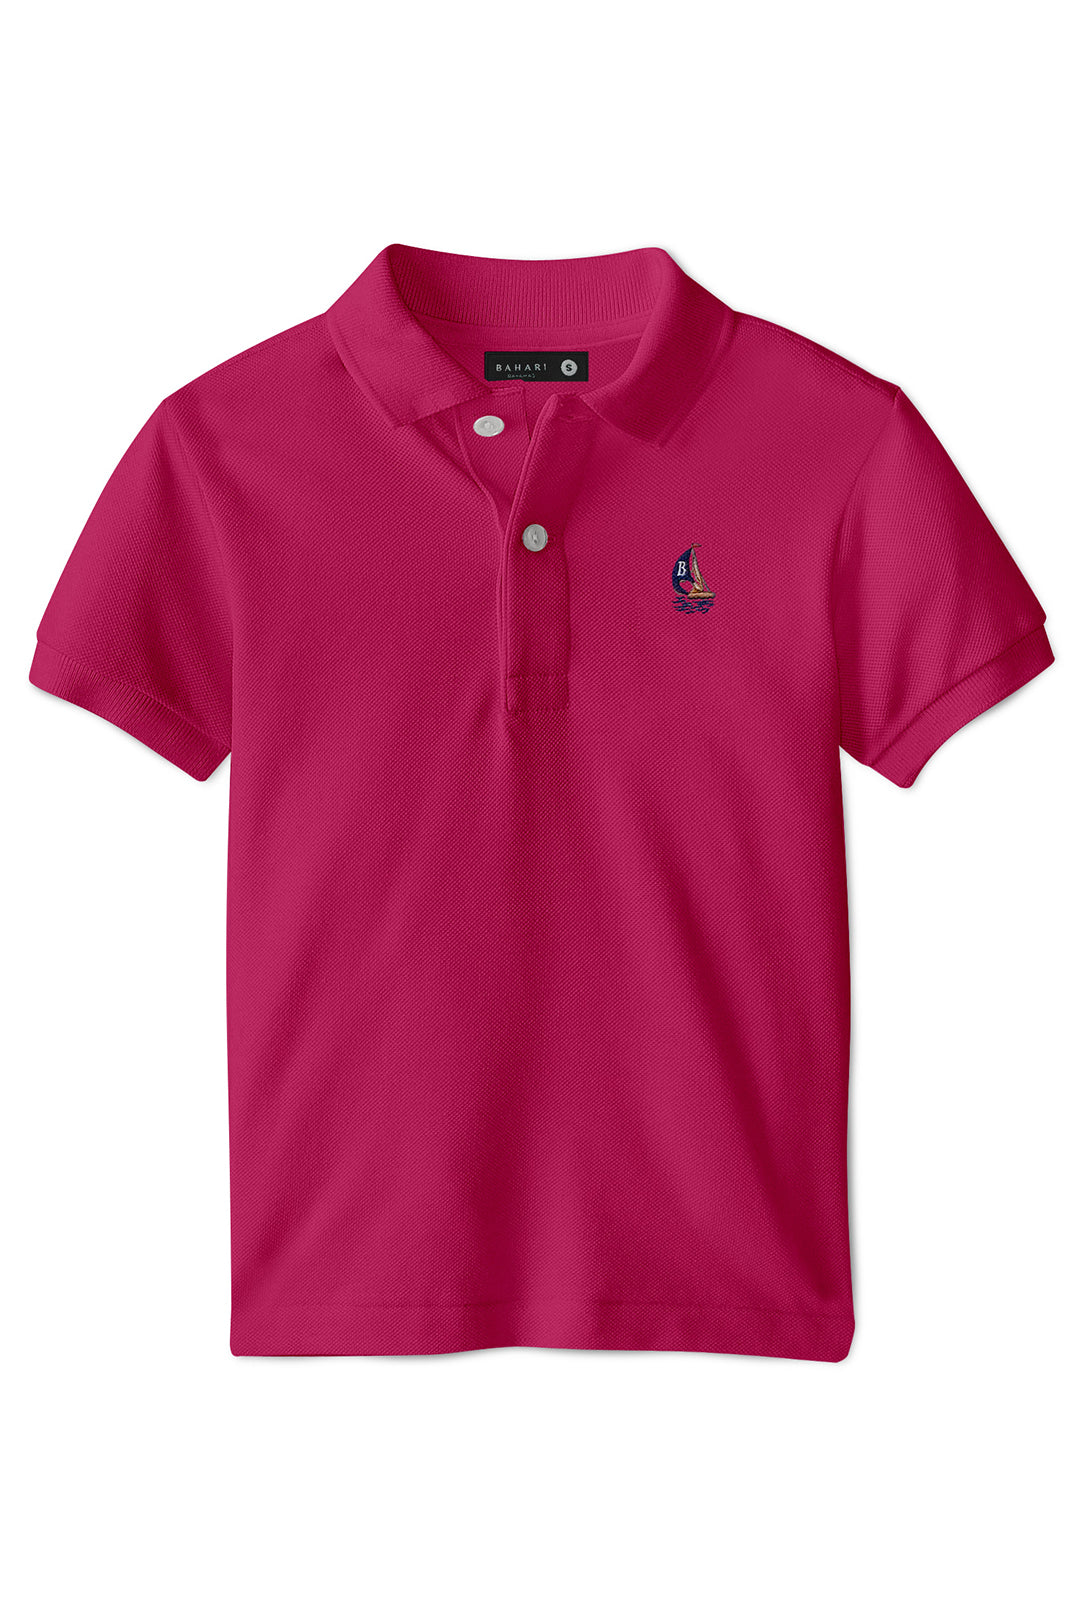 THE CLASSIC POLO- MAGENTA